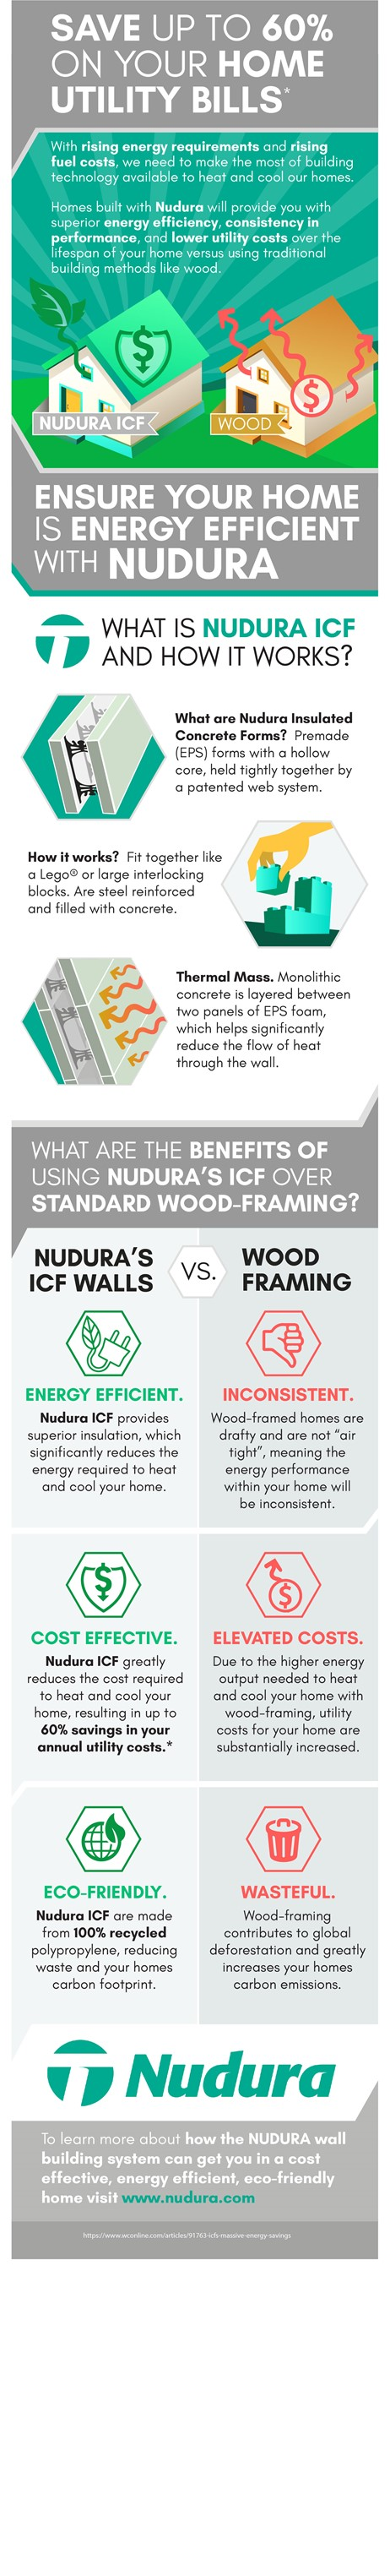 Nudura ICF Energy Efficiency Infographic